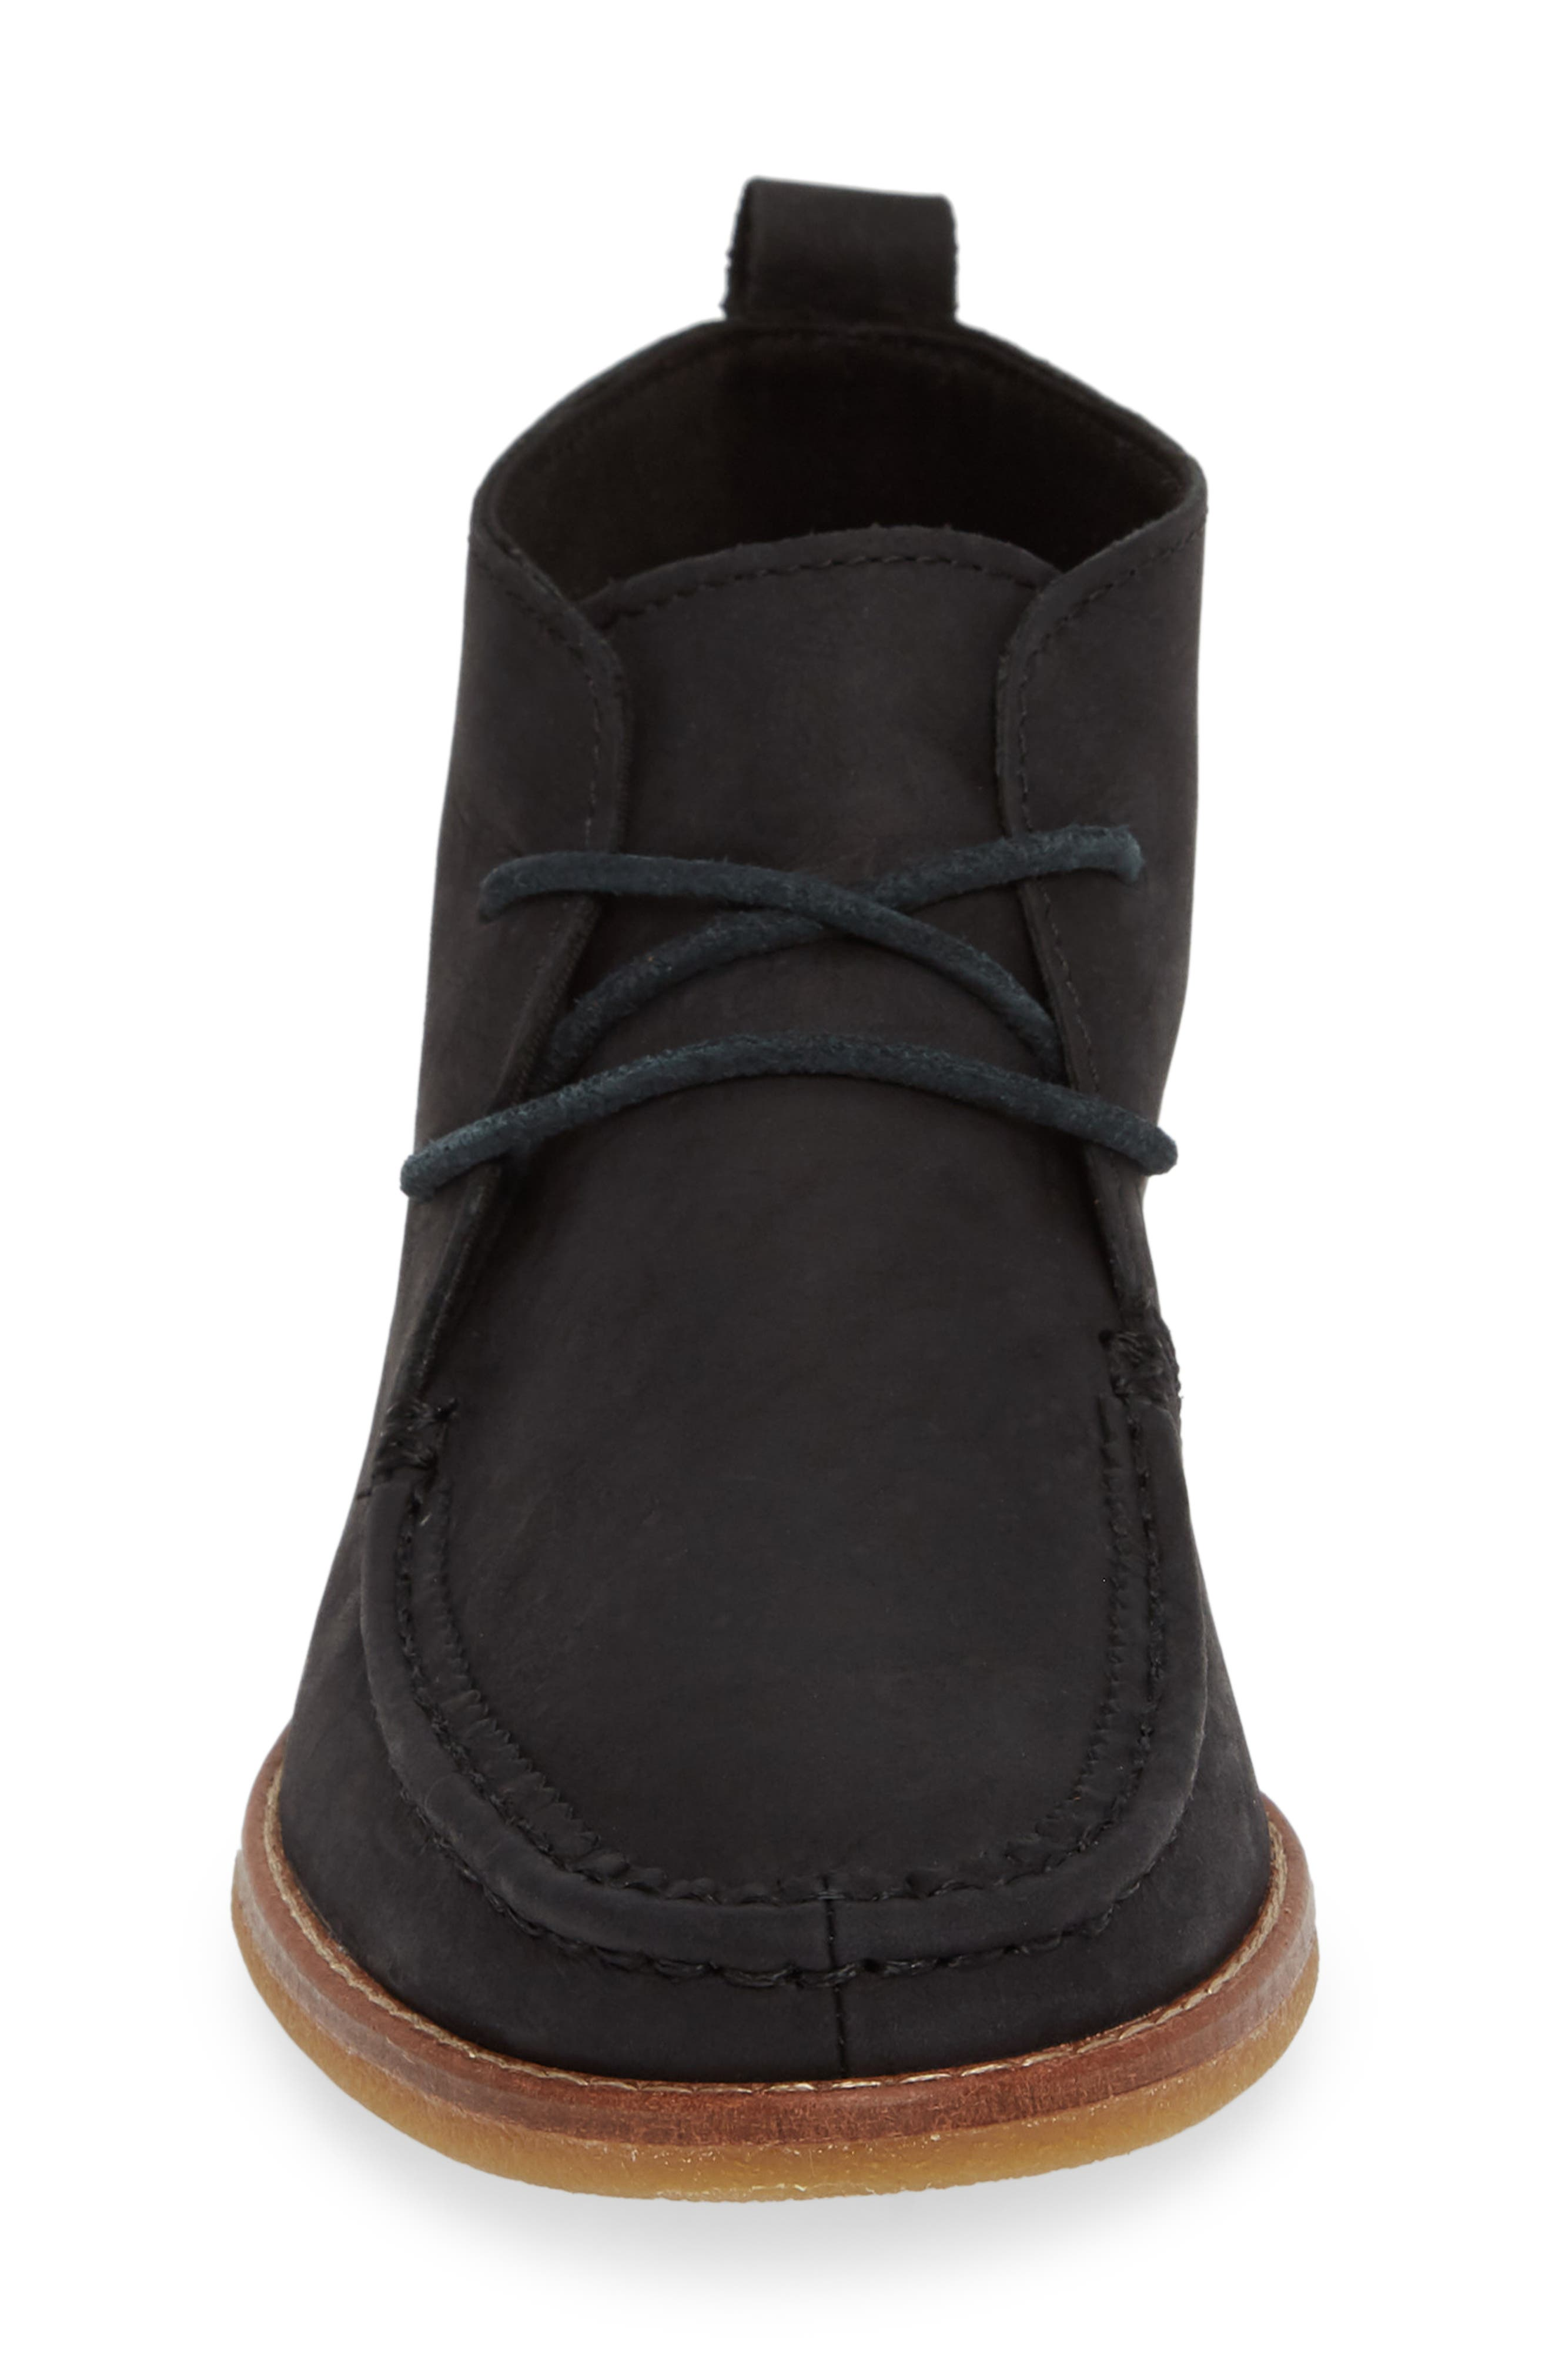 Seaport Tahoe Chukka Bootie,                             Alternate thumbnail 4, color,                             BLACK SUEDE